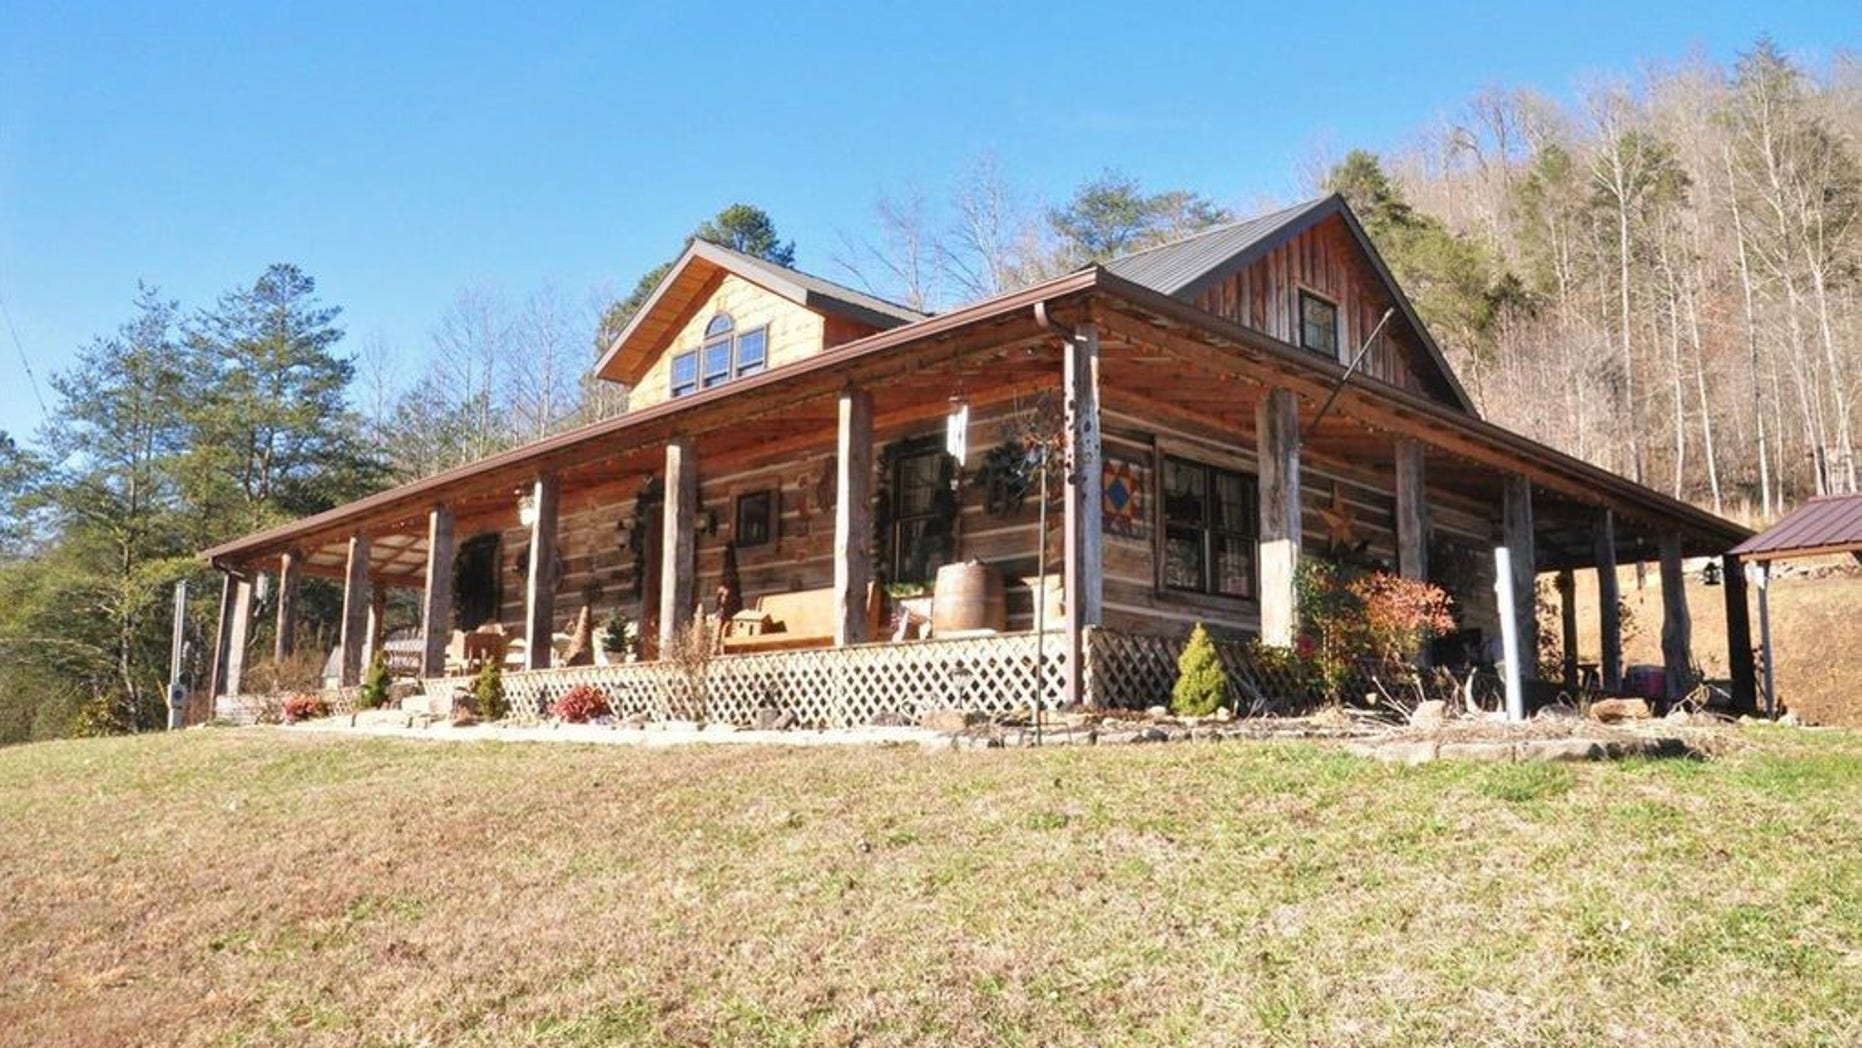 This charming three bedroom, log-cabin style house has hit the market in Jackson, and offers the chance to embrace a country lifestyle to the fullest.